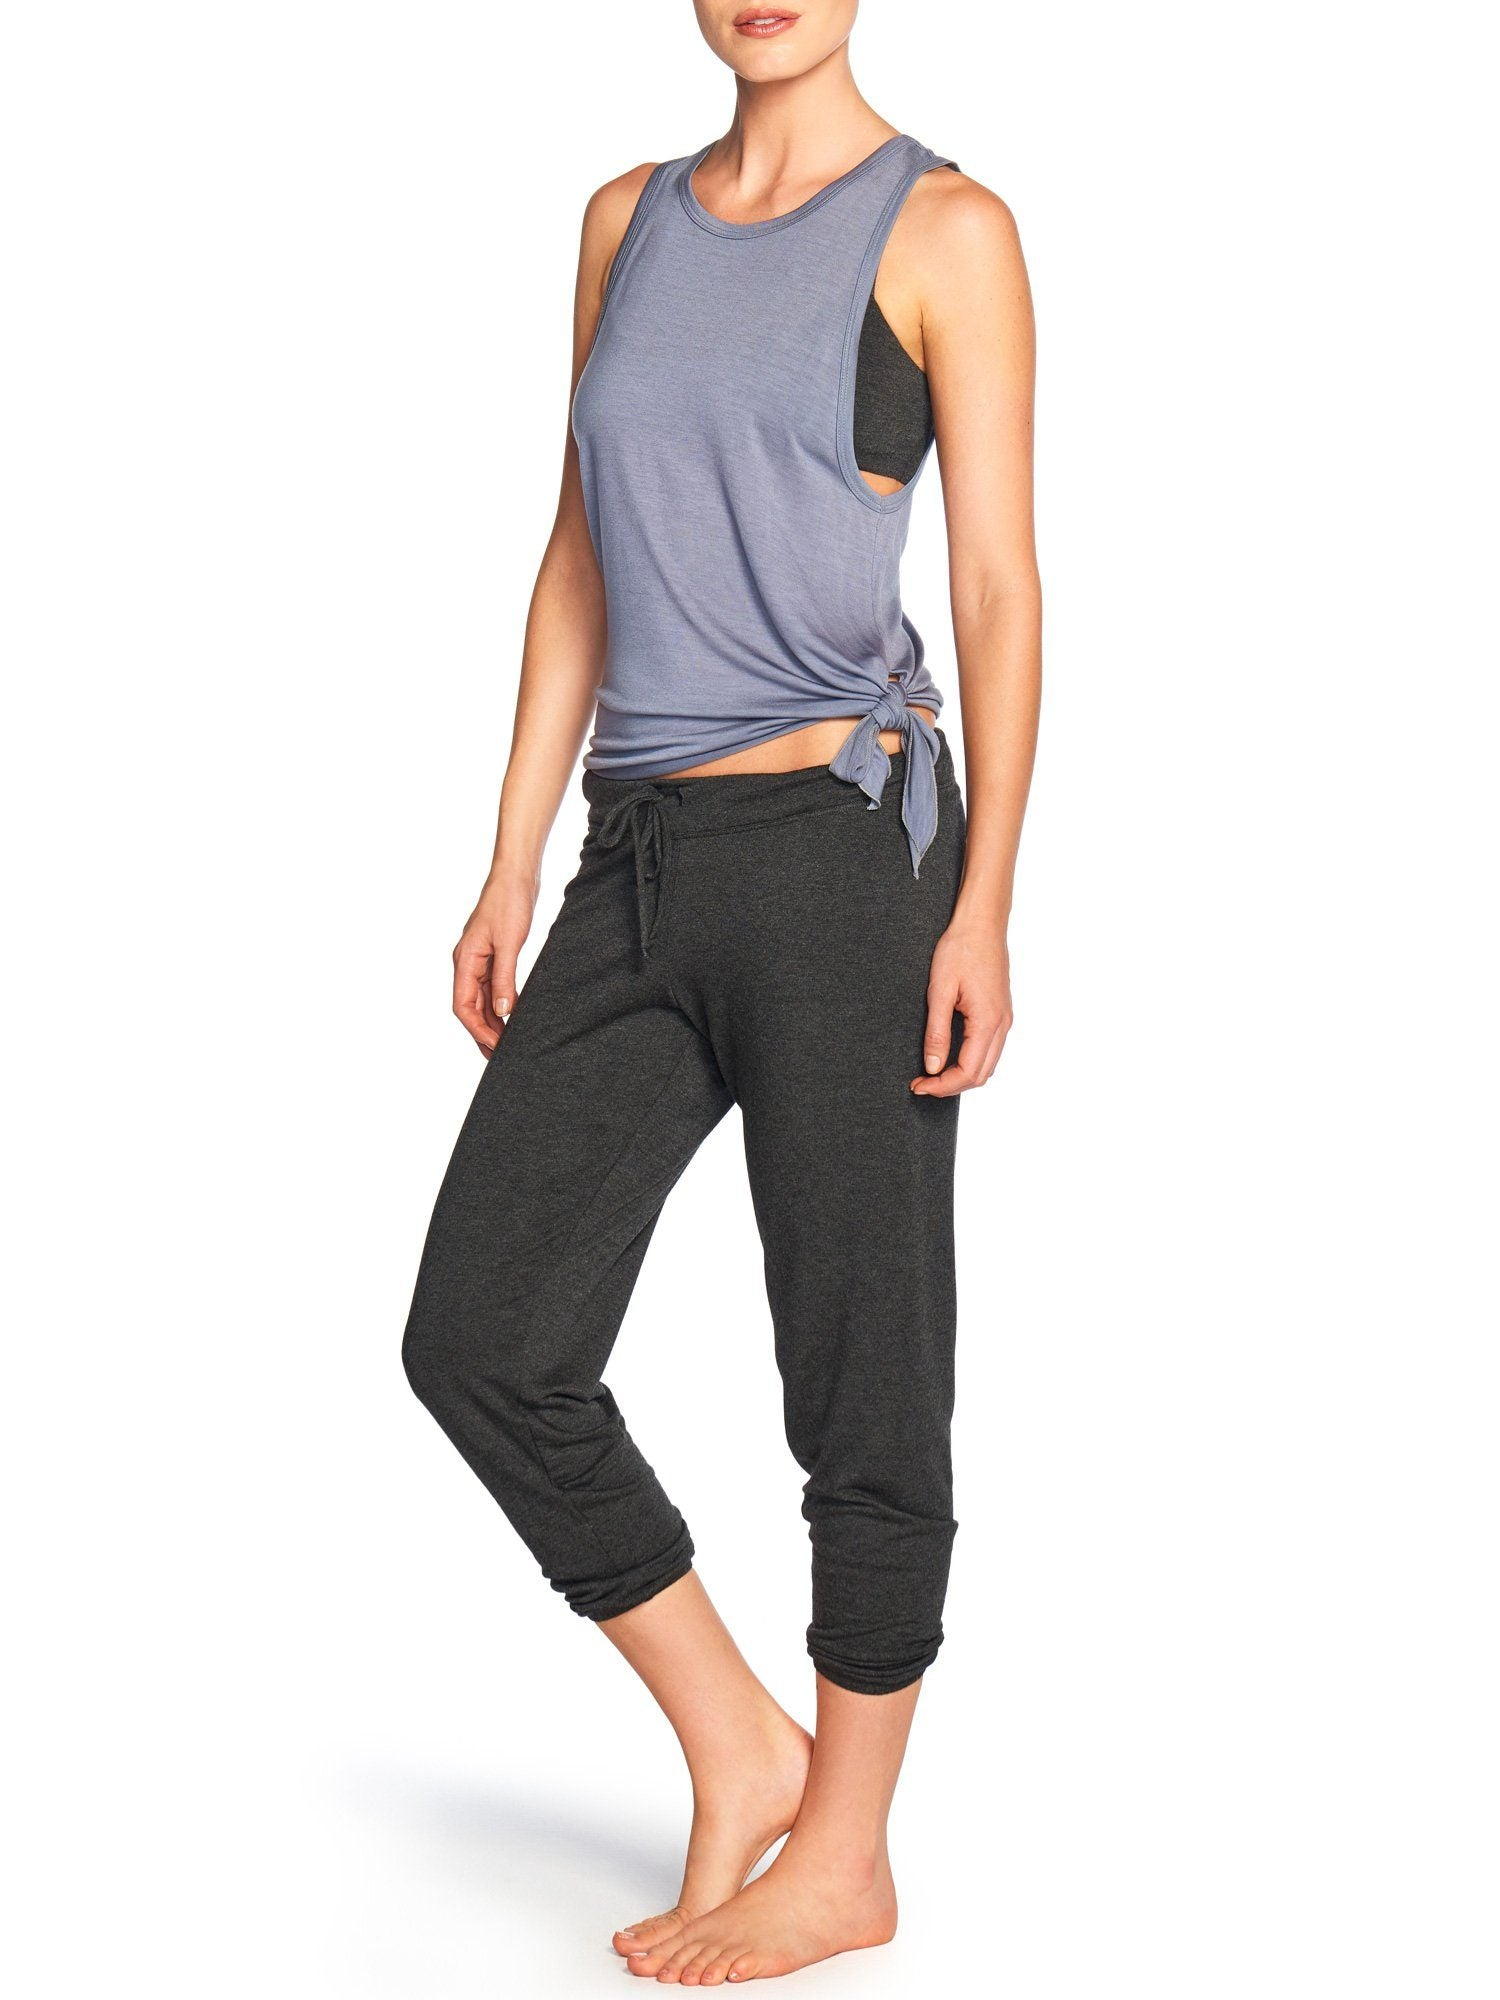 Ava Crop Pant Bottoms by Le Marché by NP